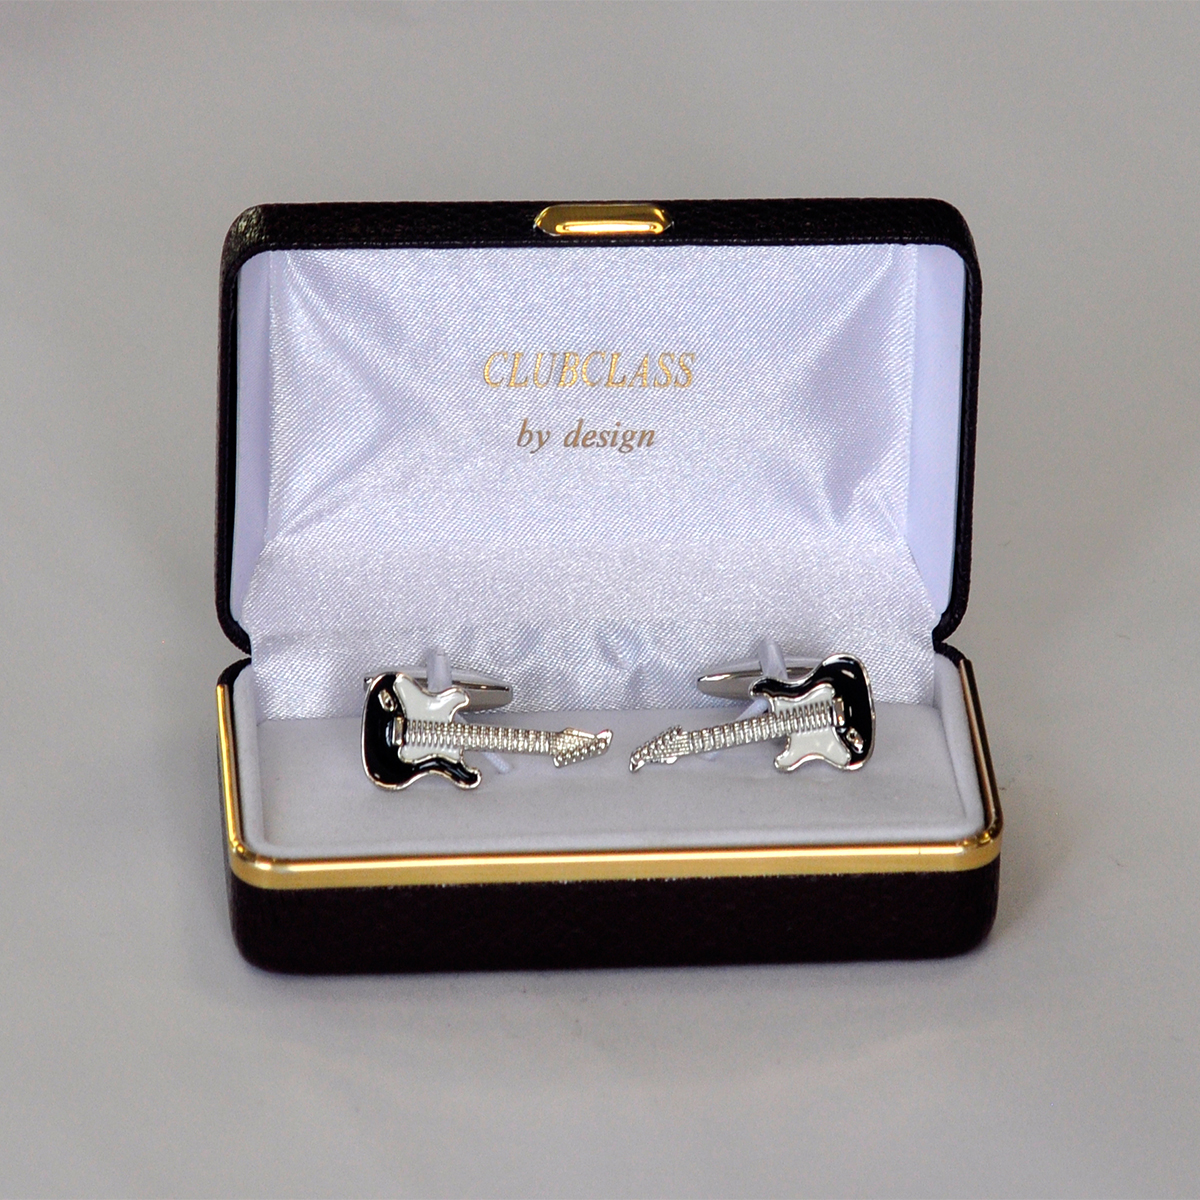 Guitar Cuff Links - €35.00